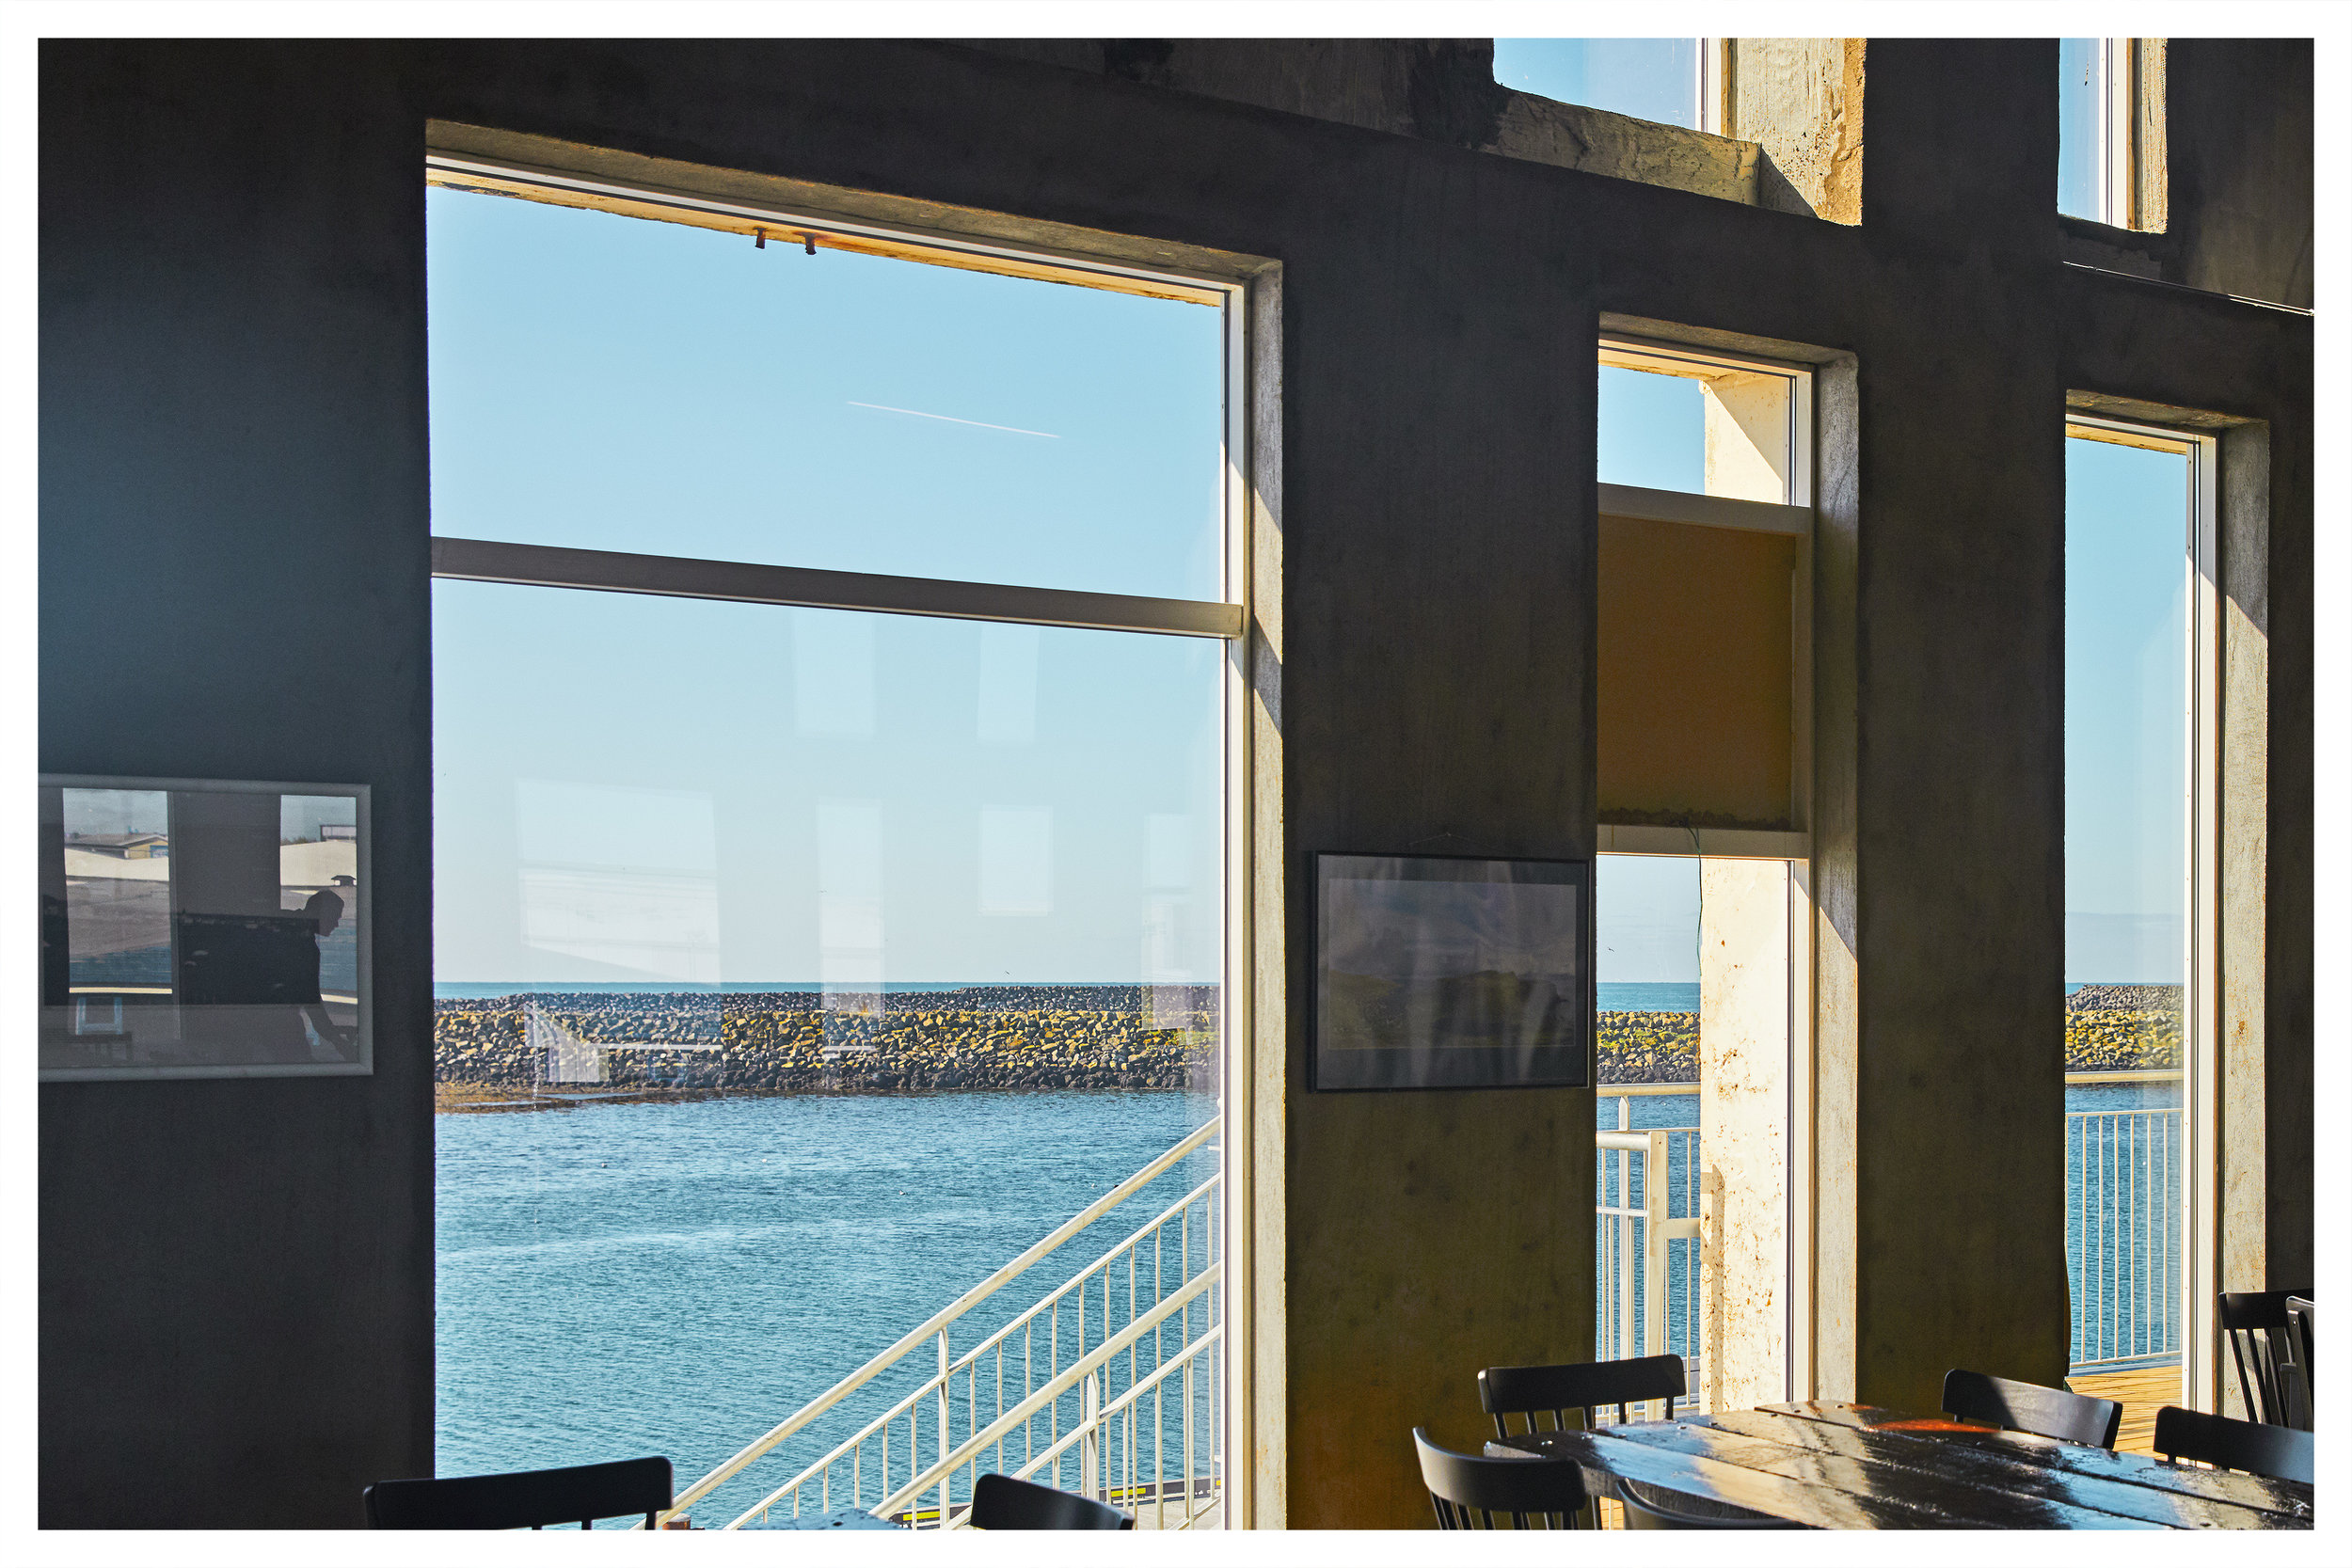 Netagerðin  - The Netagerðin hall has large windows providing a view over the Grindavik Harbour of the Atlantic Ocean to the south.